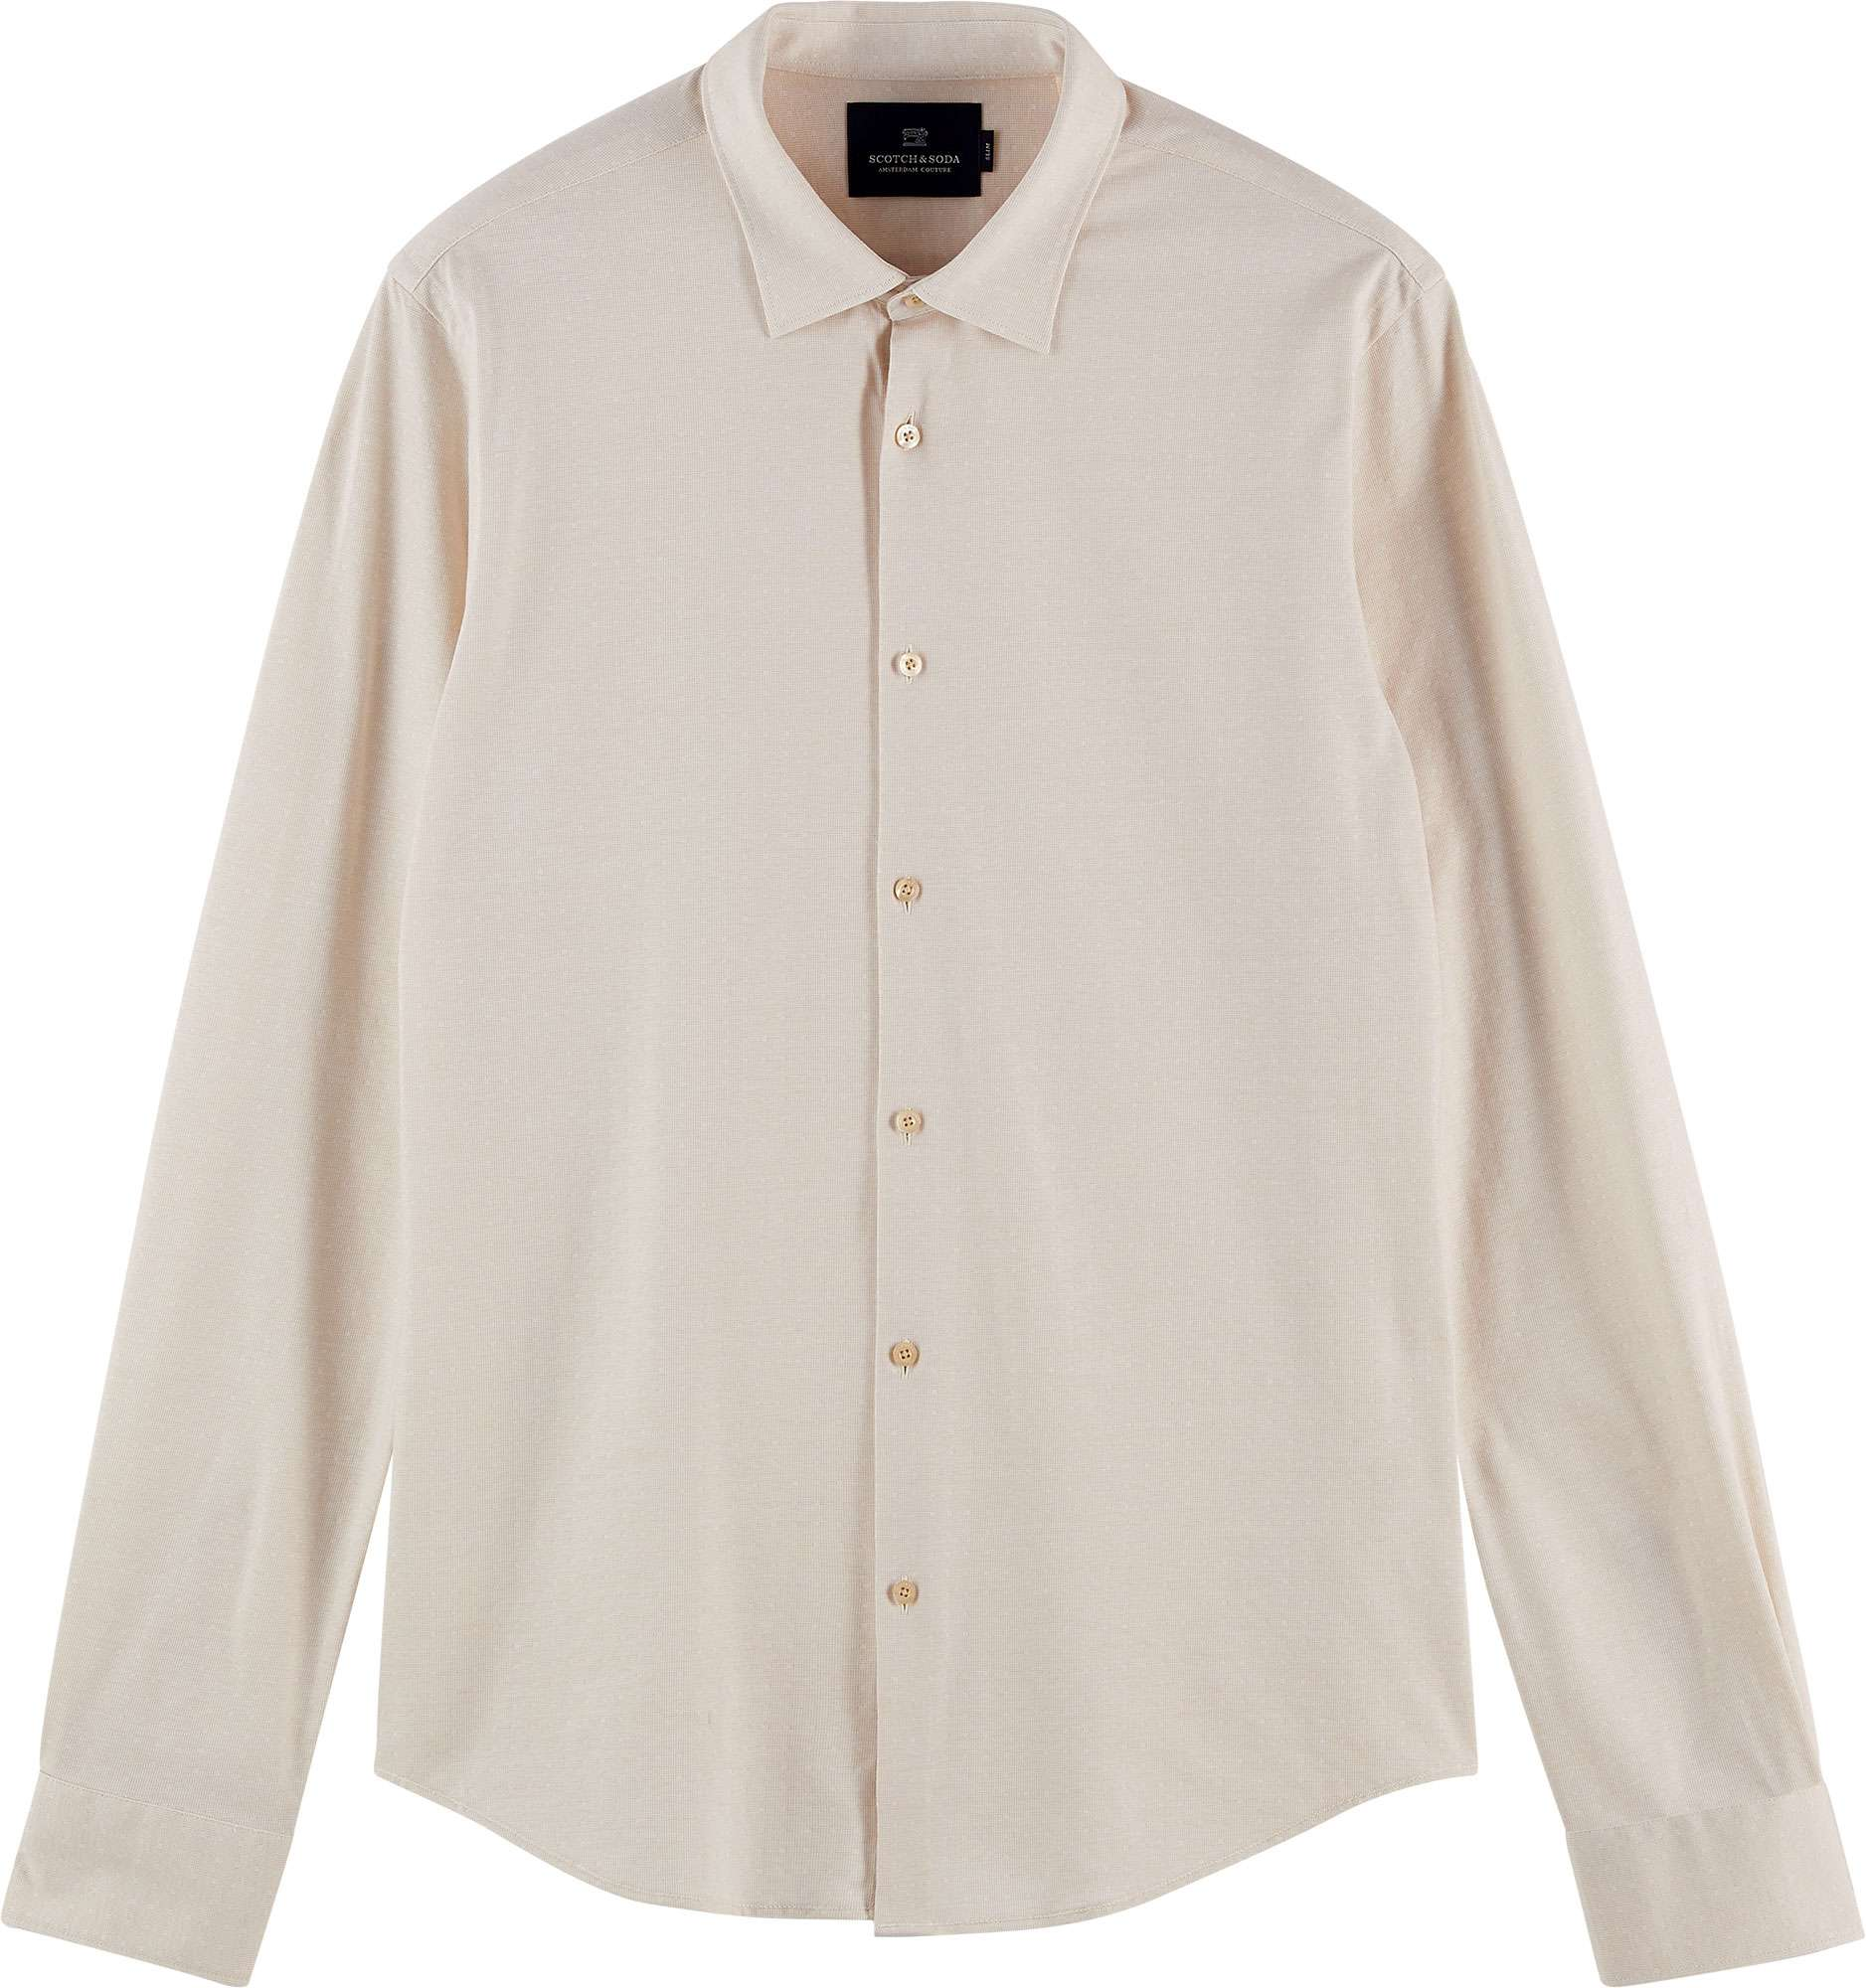 Slim fit- classic knitted shirt sand